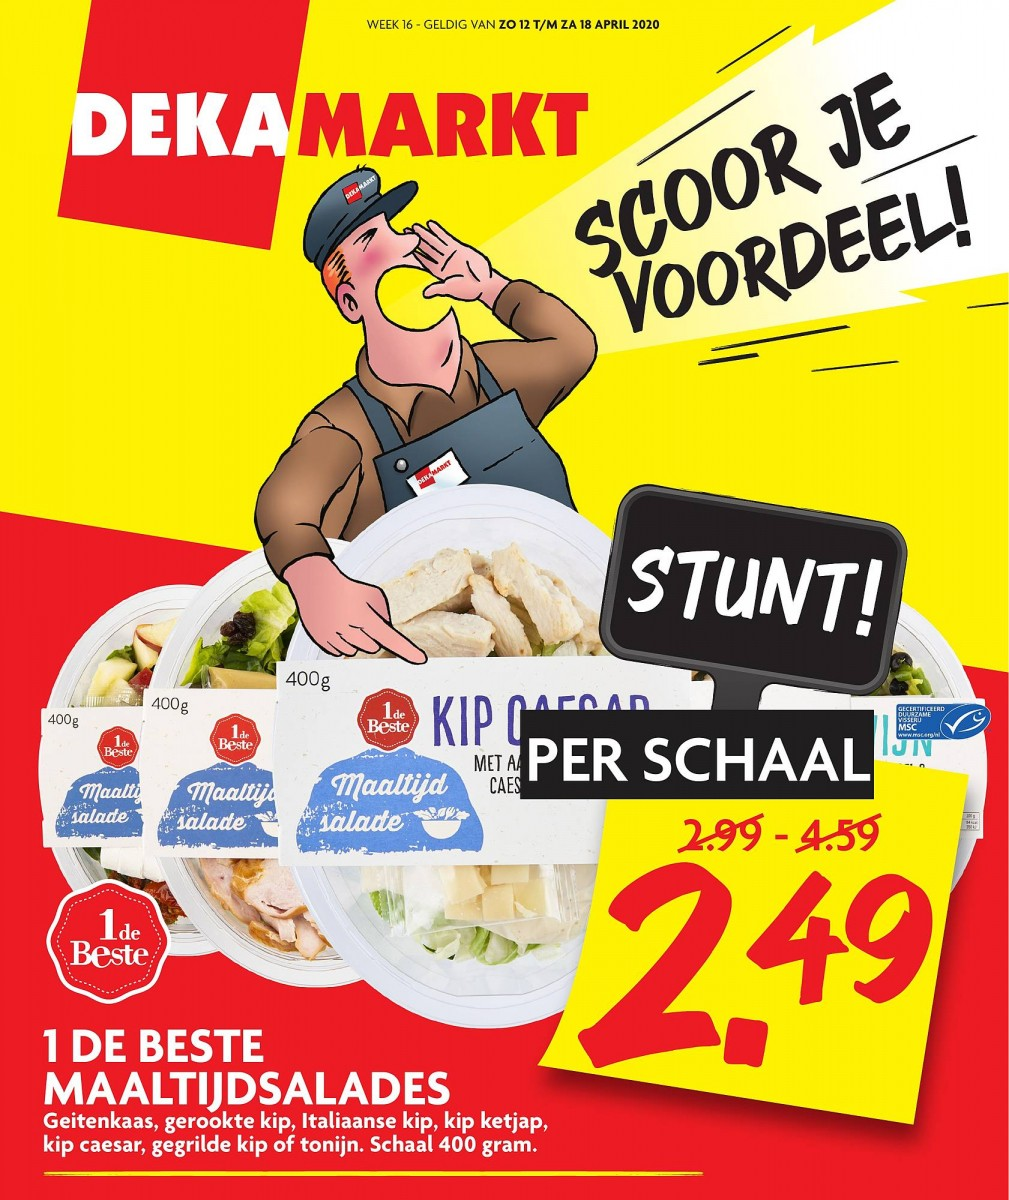 DekaMarkt Folder Week 16 - 12.04.2020 - 18.04.2020